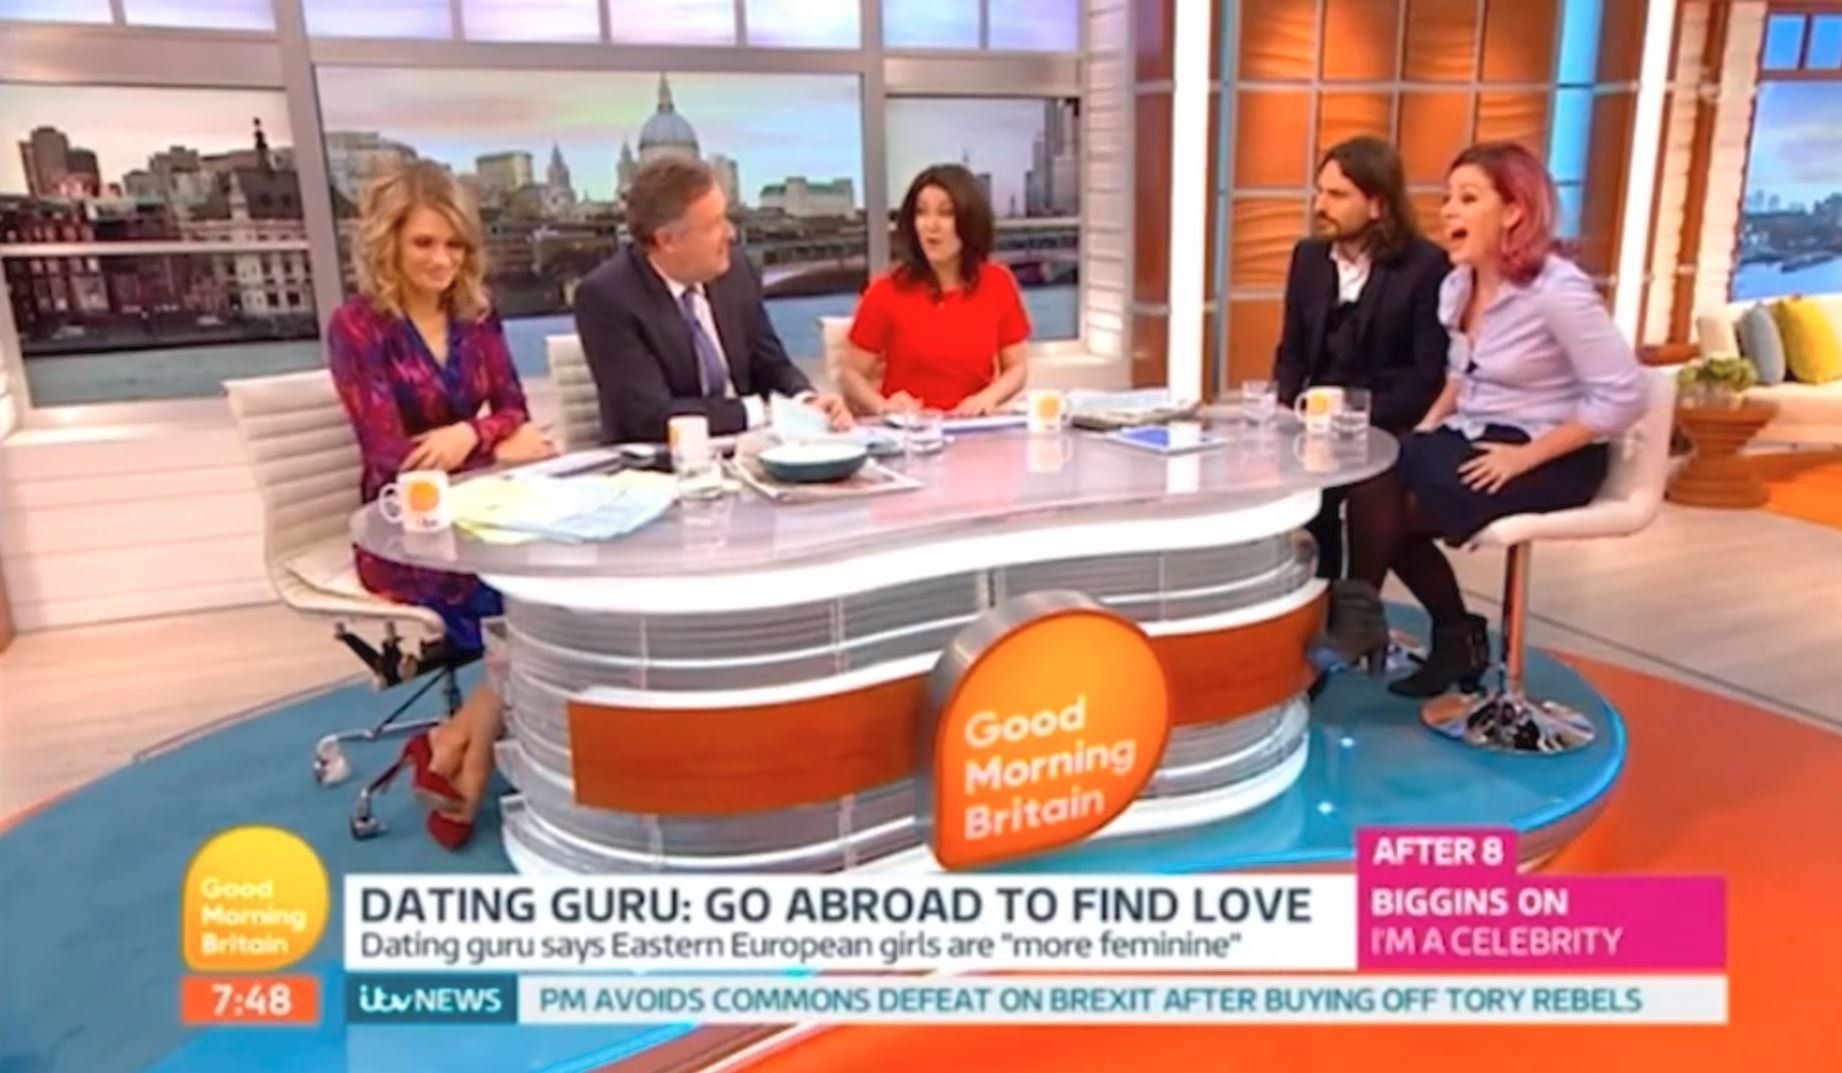 Piers Morgan Brands 'Good Morning Britain' Guest 'A D***' Live On